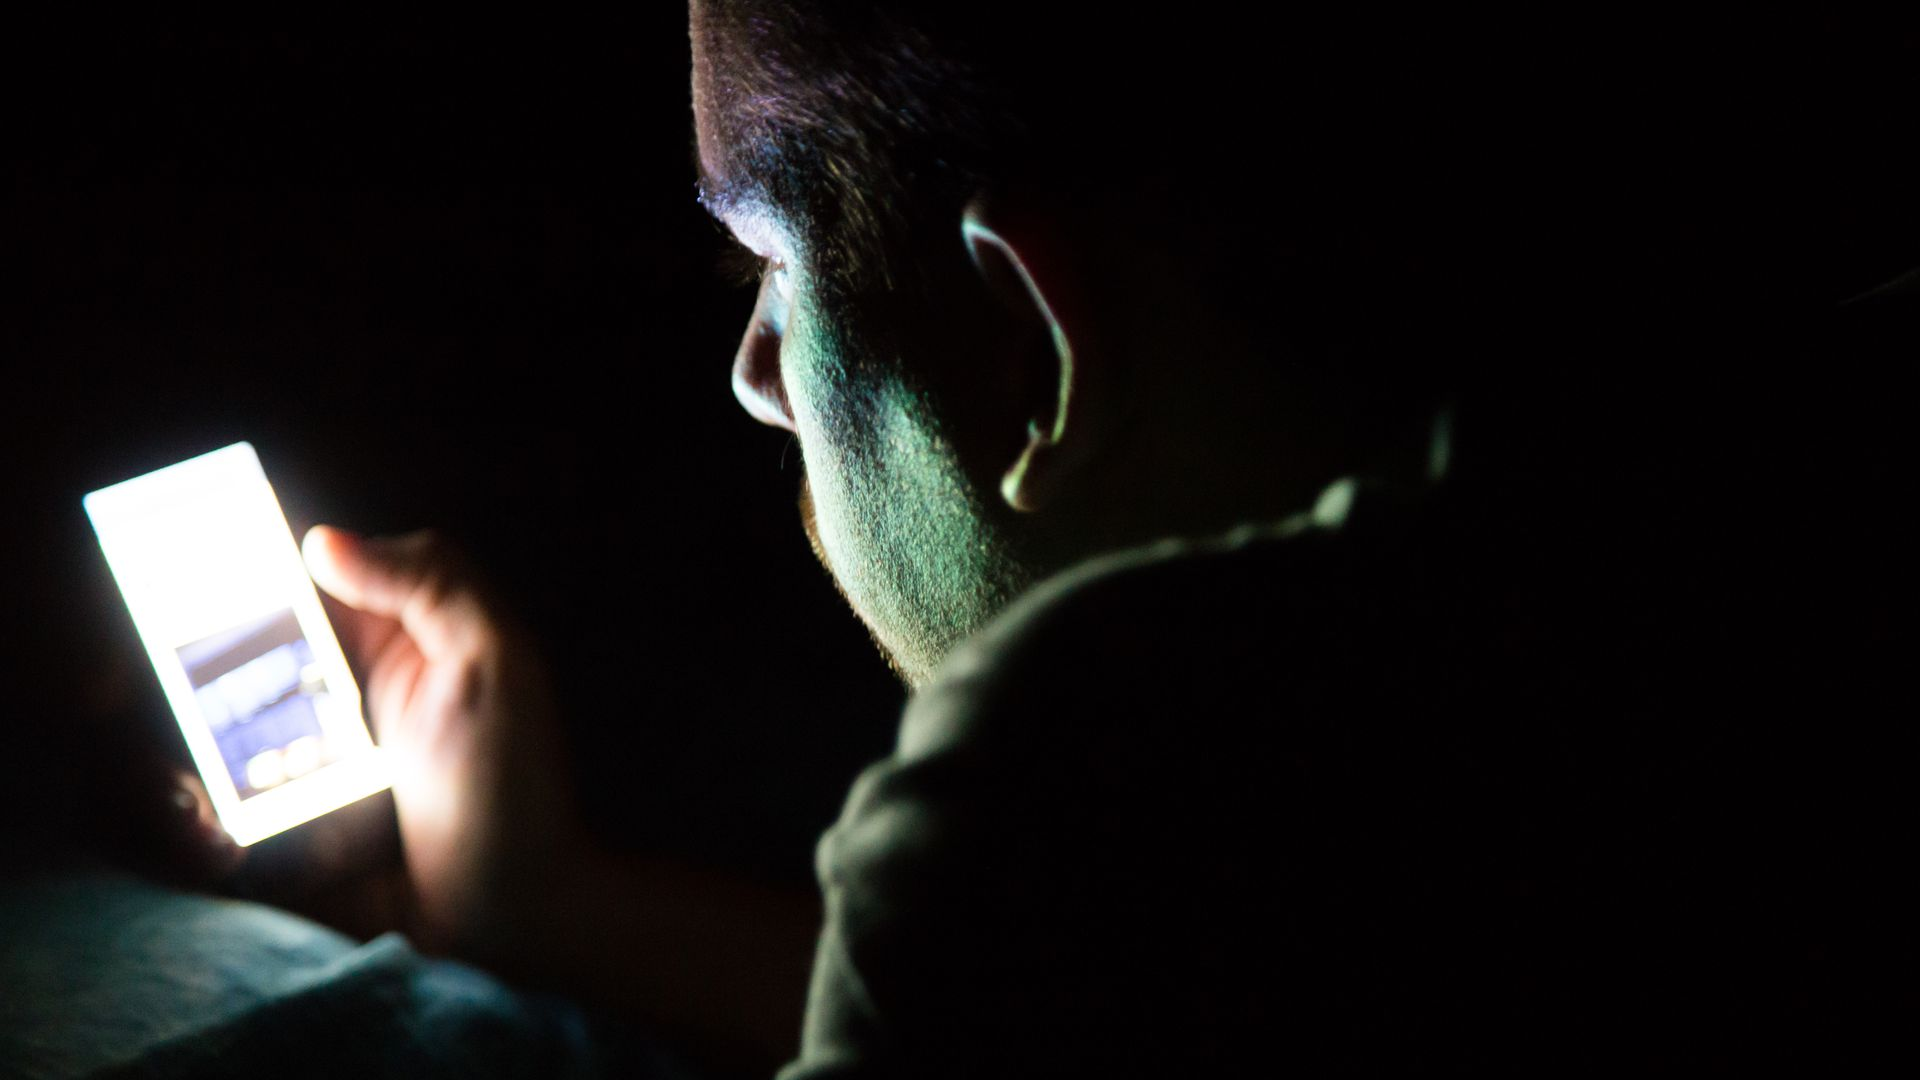 A mani in the dark looks at a smartphone, which illuminates his face